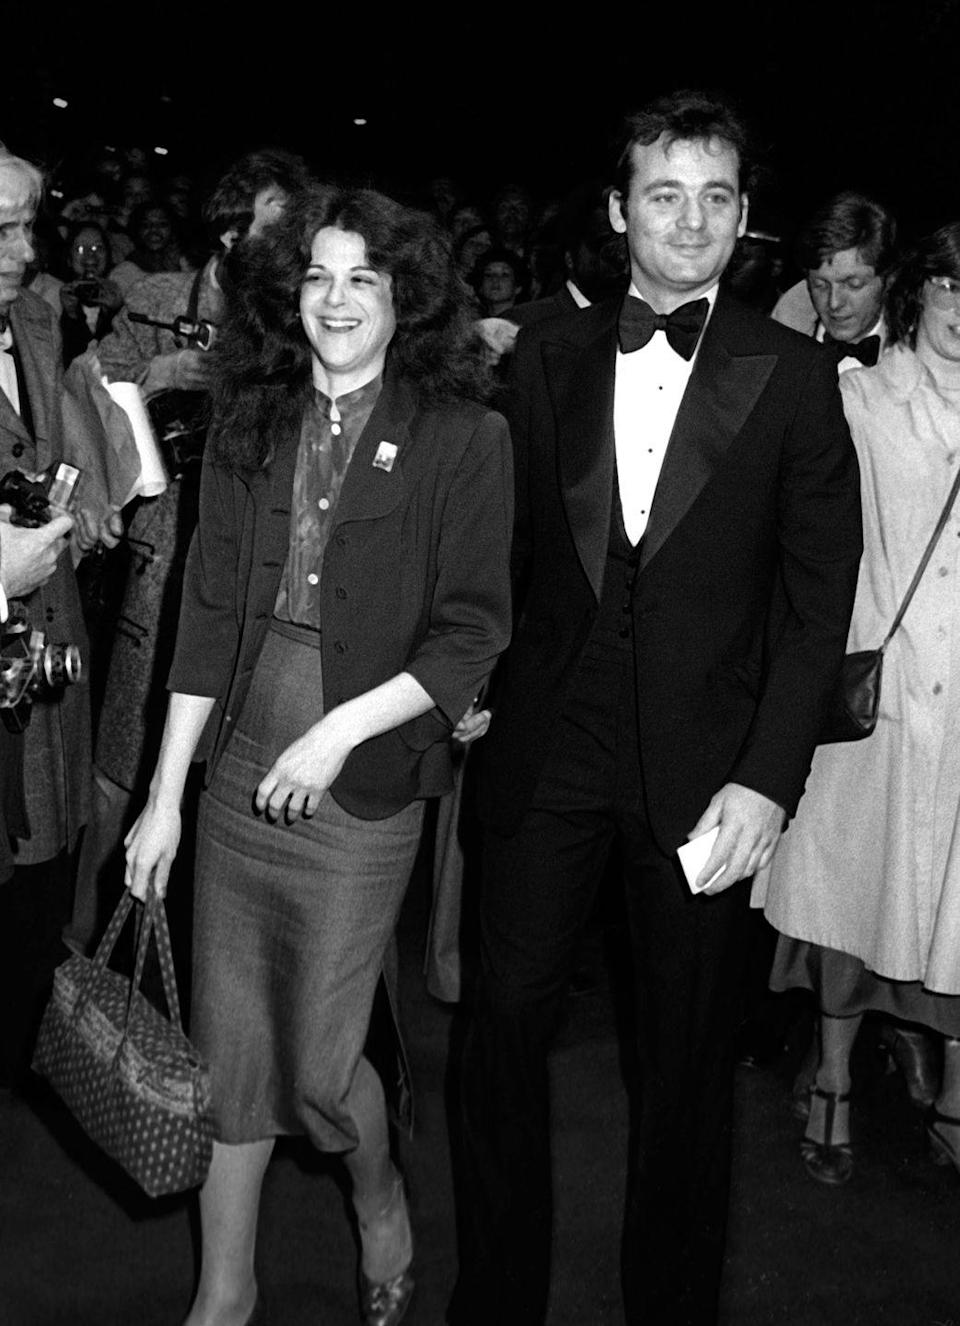 <p>Gilda Radner and Bill Murray attend the premiere of <em>Manhattan</em> on April 18, 1979 at the Ziegfeld Theater in New York City.</p>